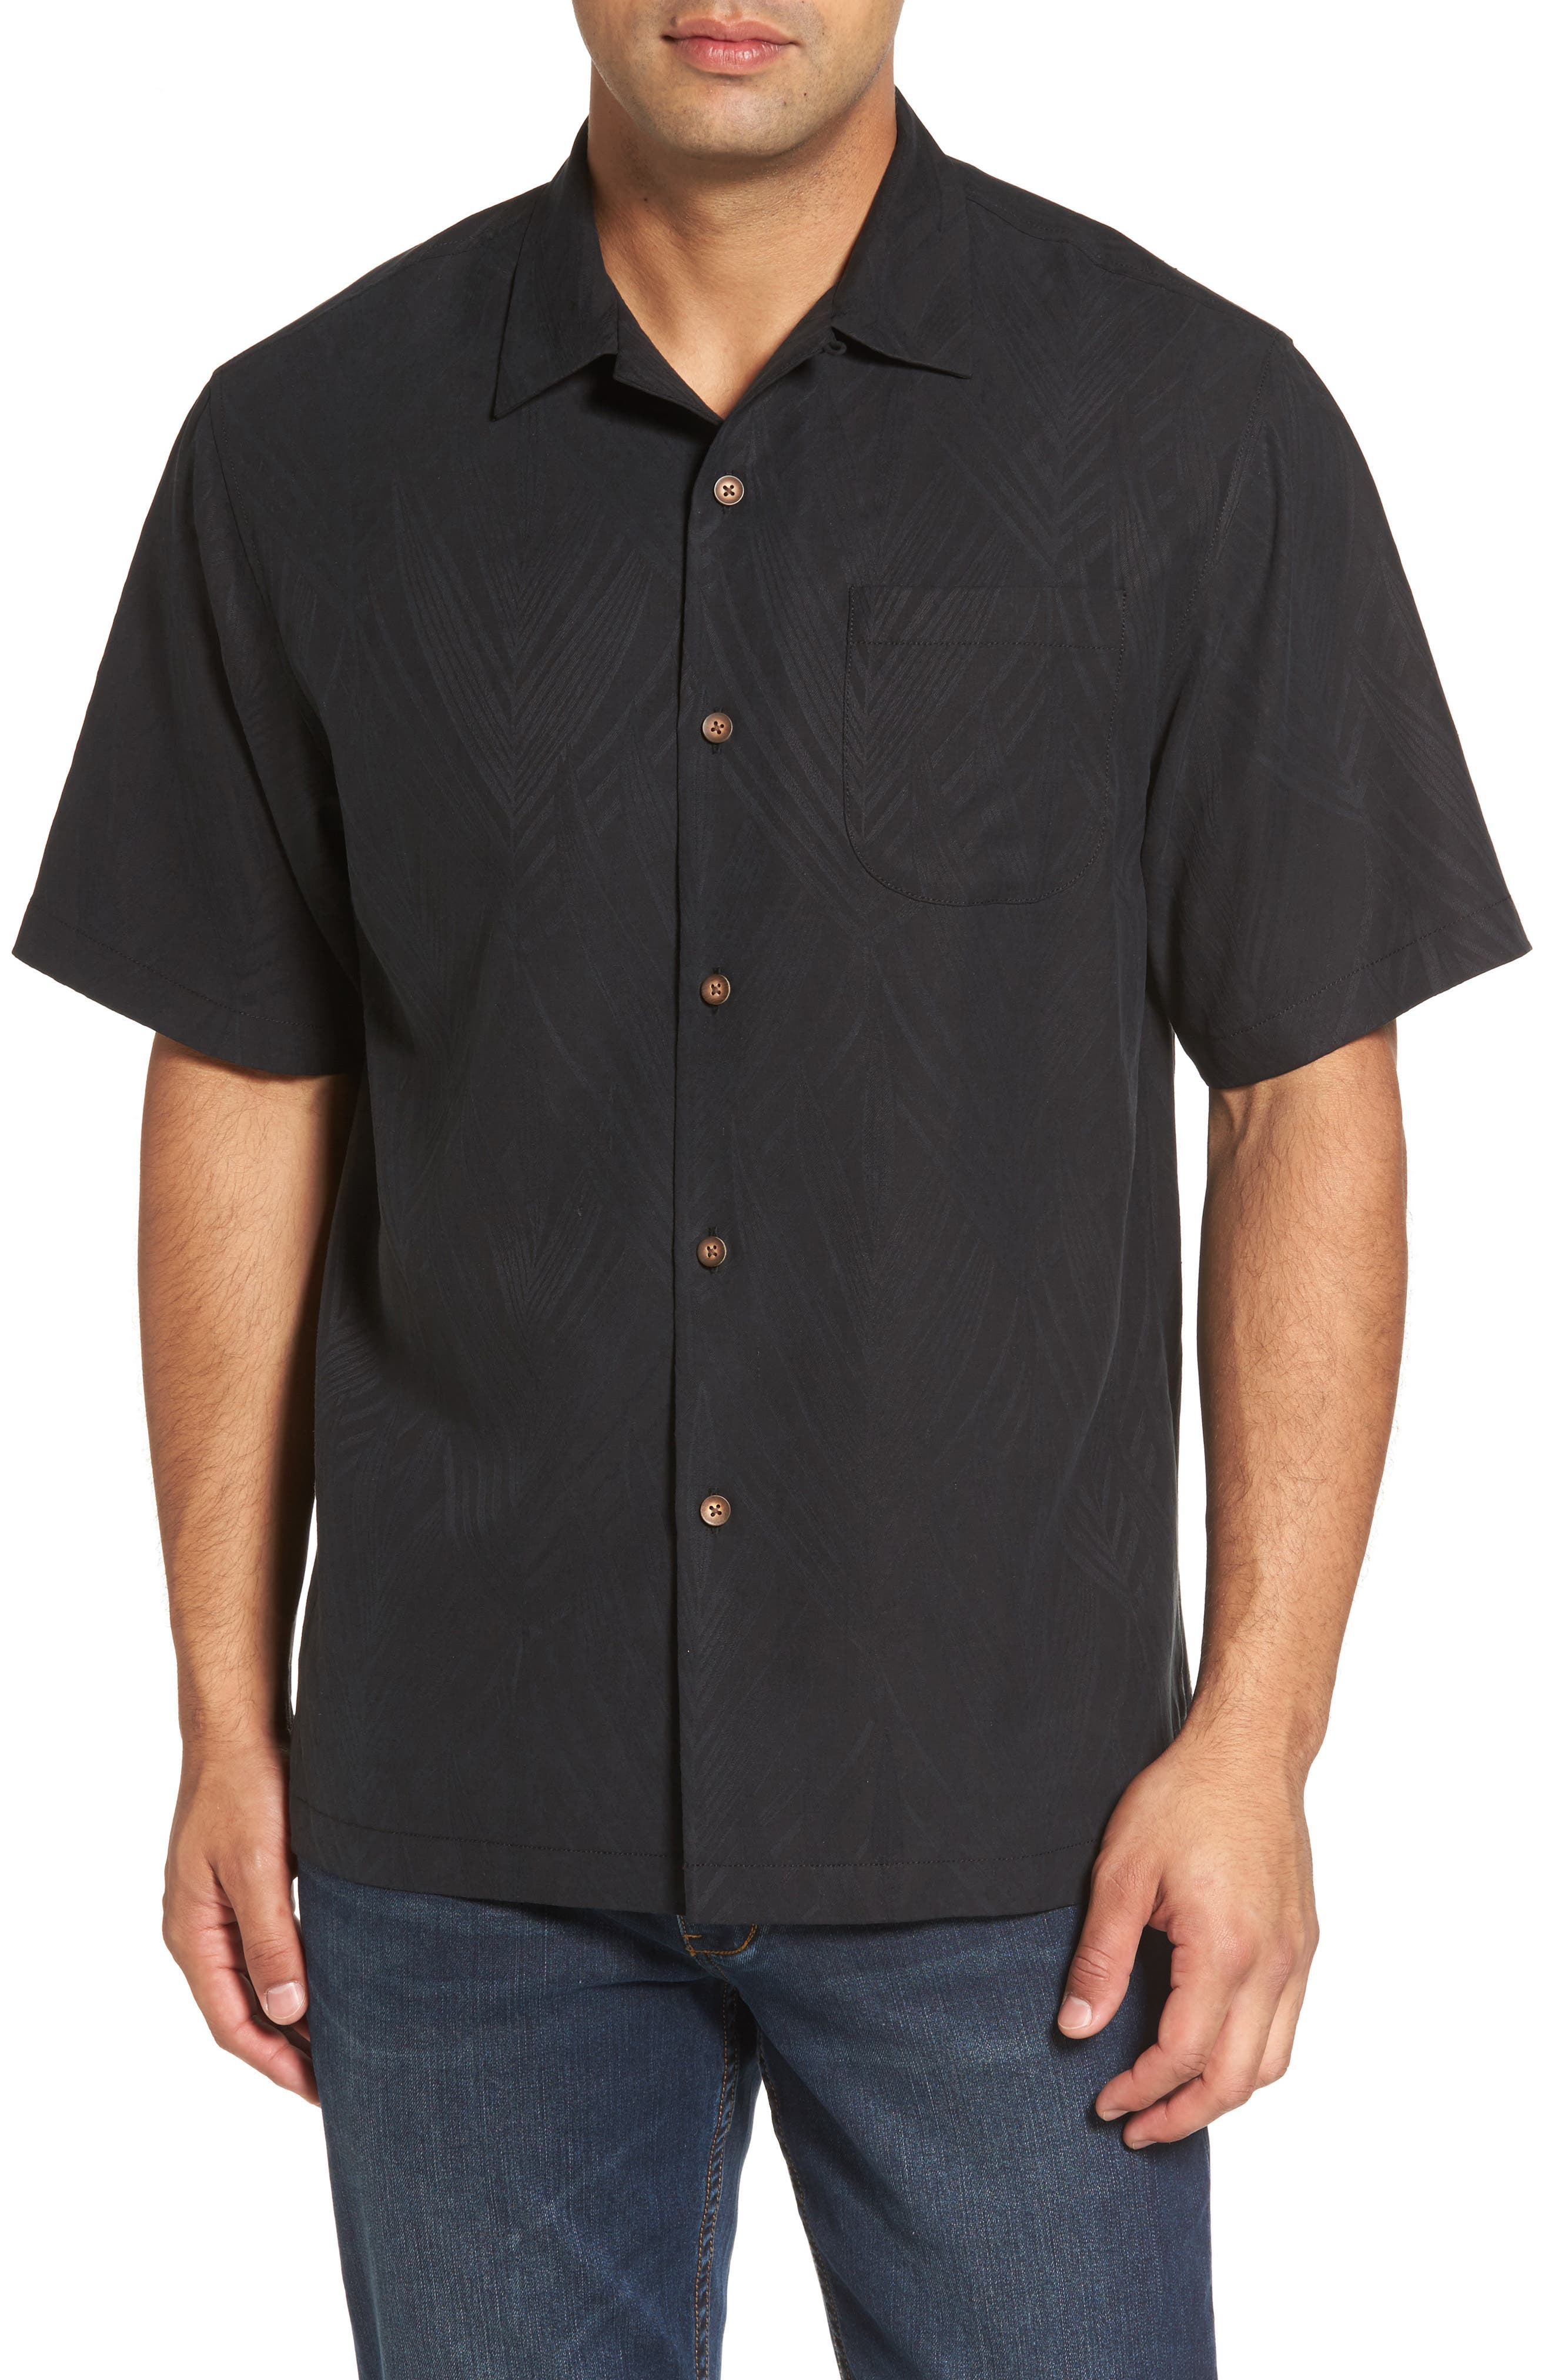 Main Image - Tommy Bahama Local Watering Hole Embroidered Silk Camp Shirt (Big & Tall)